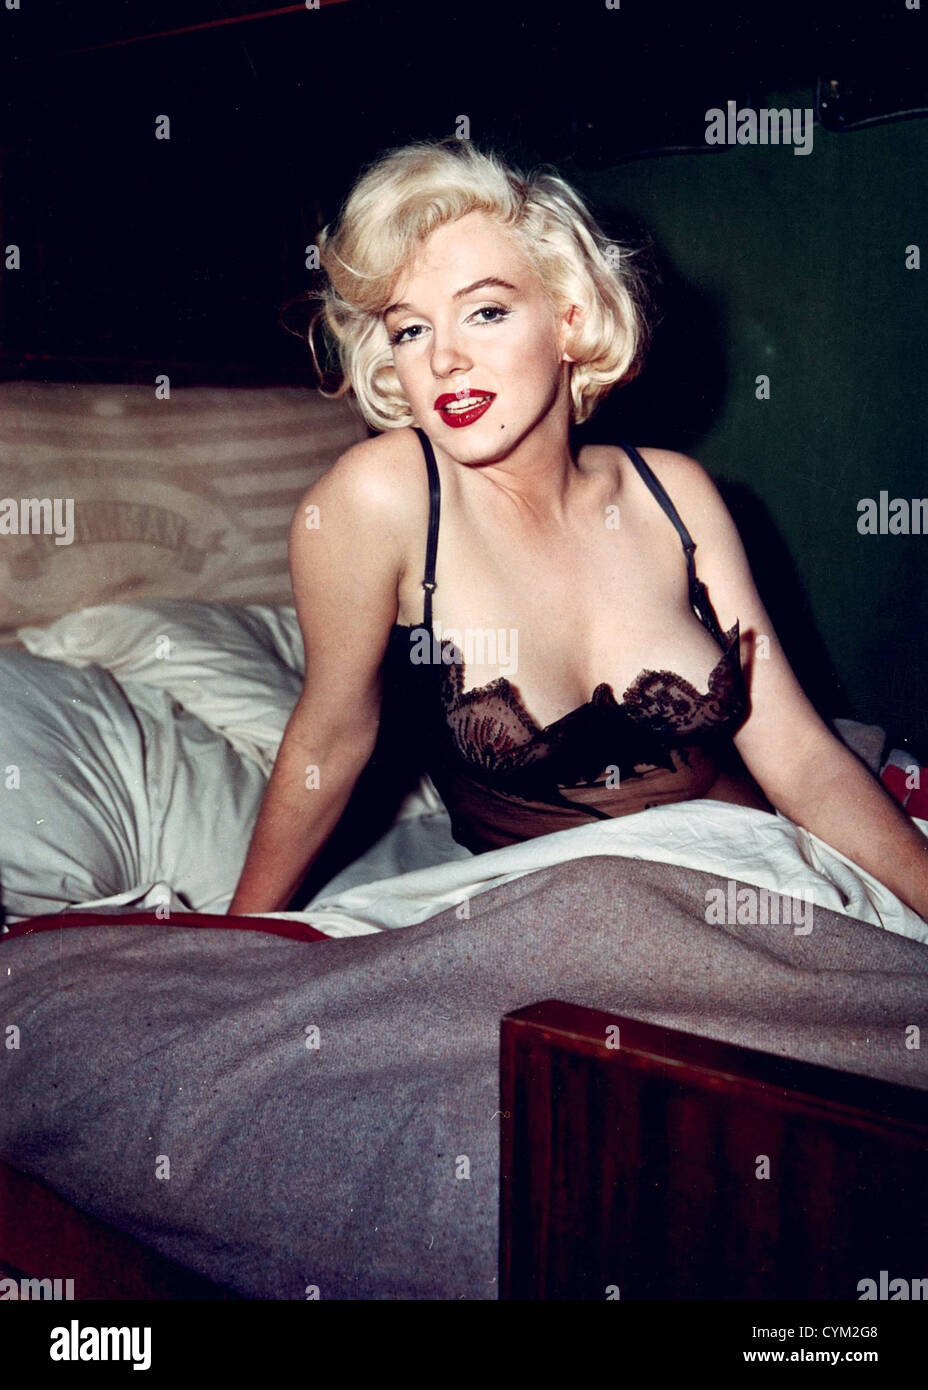 Marilyn Monroe Some Like it Hot 1959 Director: Billy Wilder - Stock Image